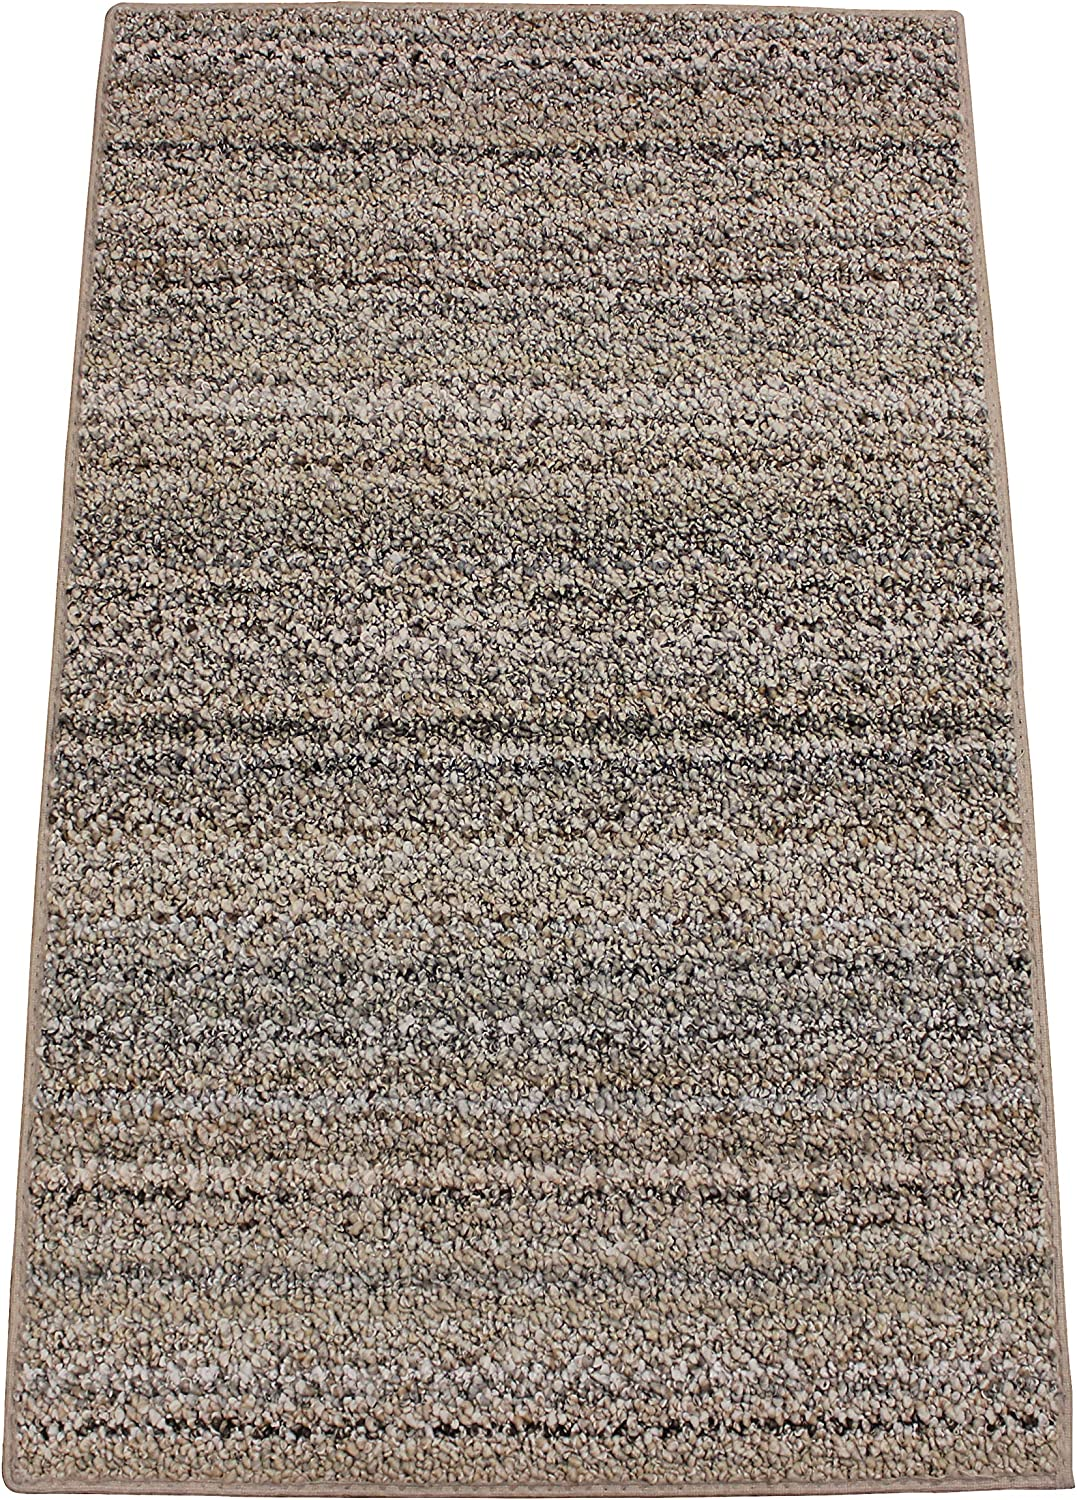 Boho Striped Beige Area Rugs Made 100% 価格 交渉 送料無料 Ca Polyester Recycled for 最新号掲載アイテム